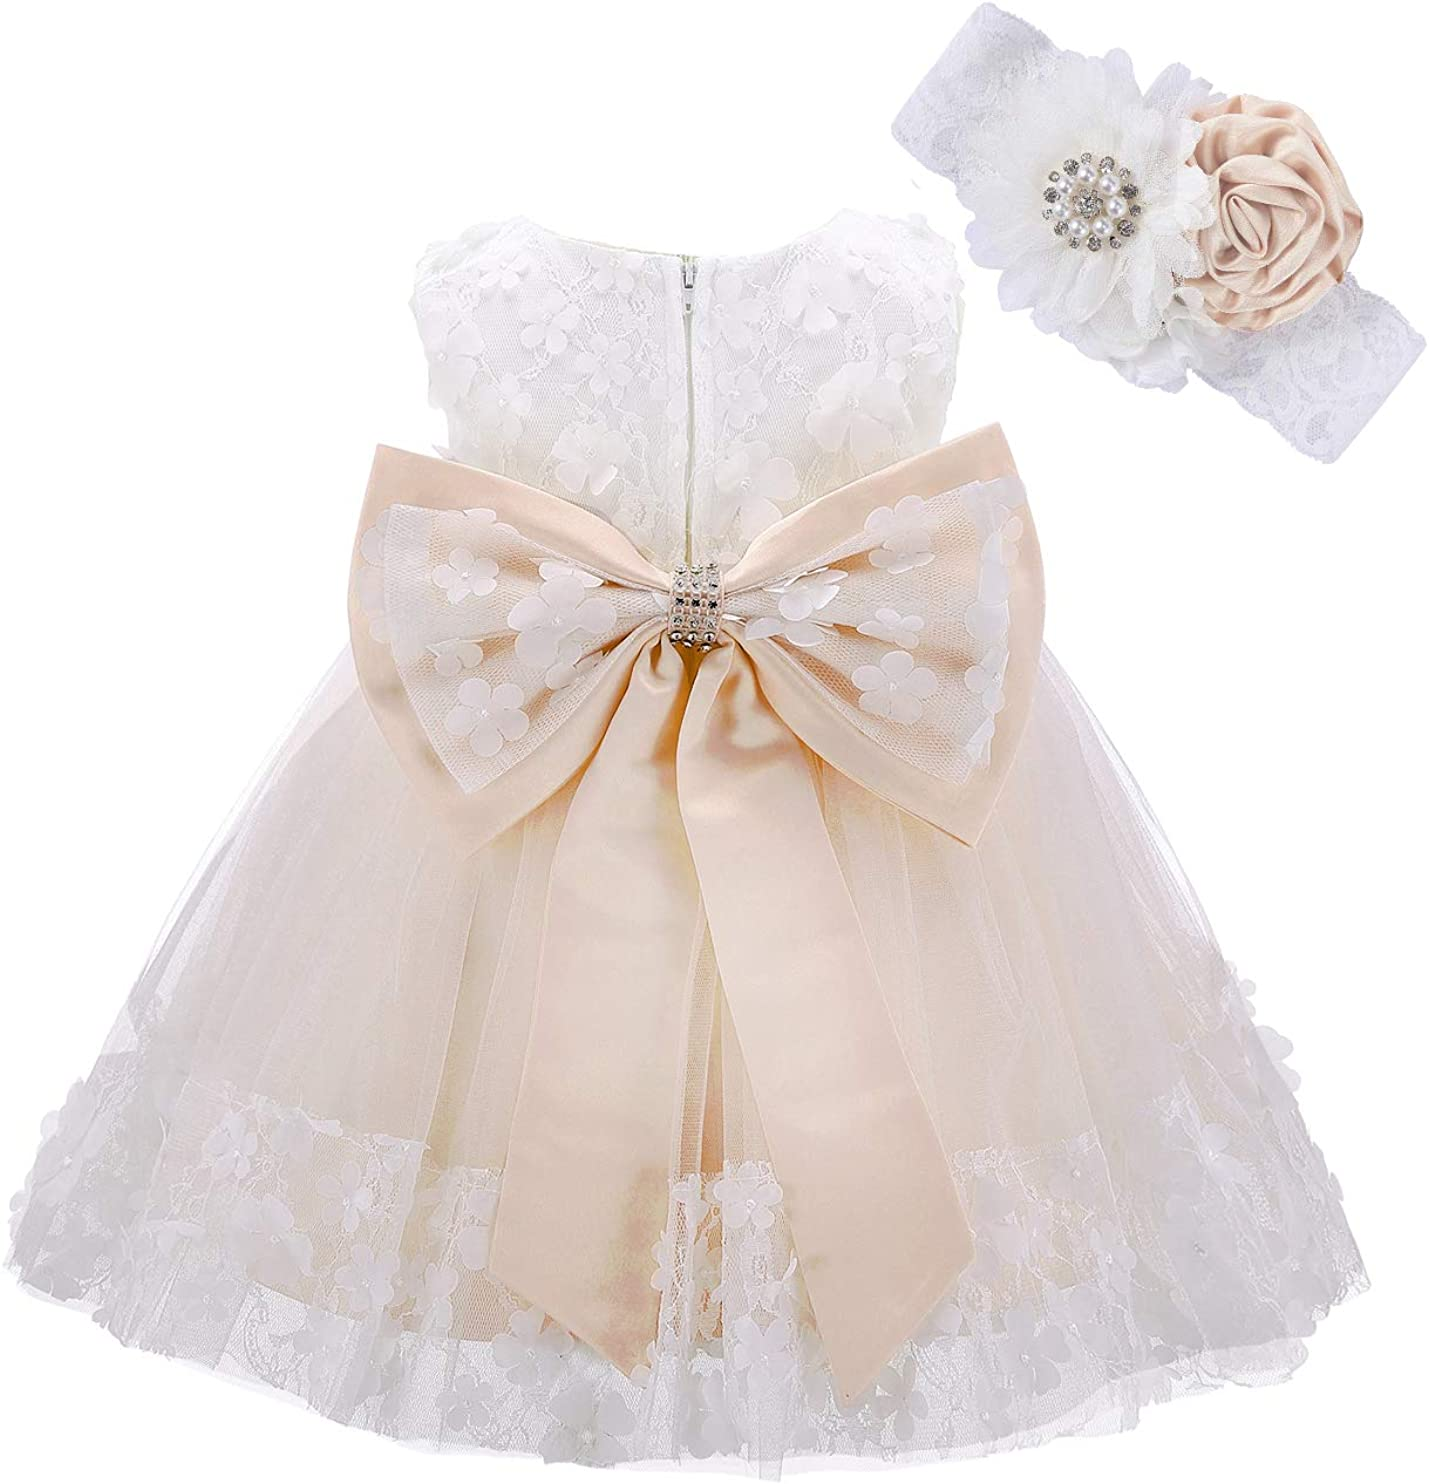 Limited time sale Bow Dream Baby Flower Girl Birthday Applique Dress Headband Purchase with